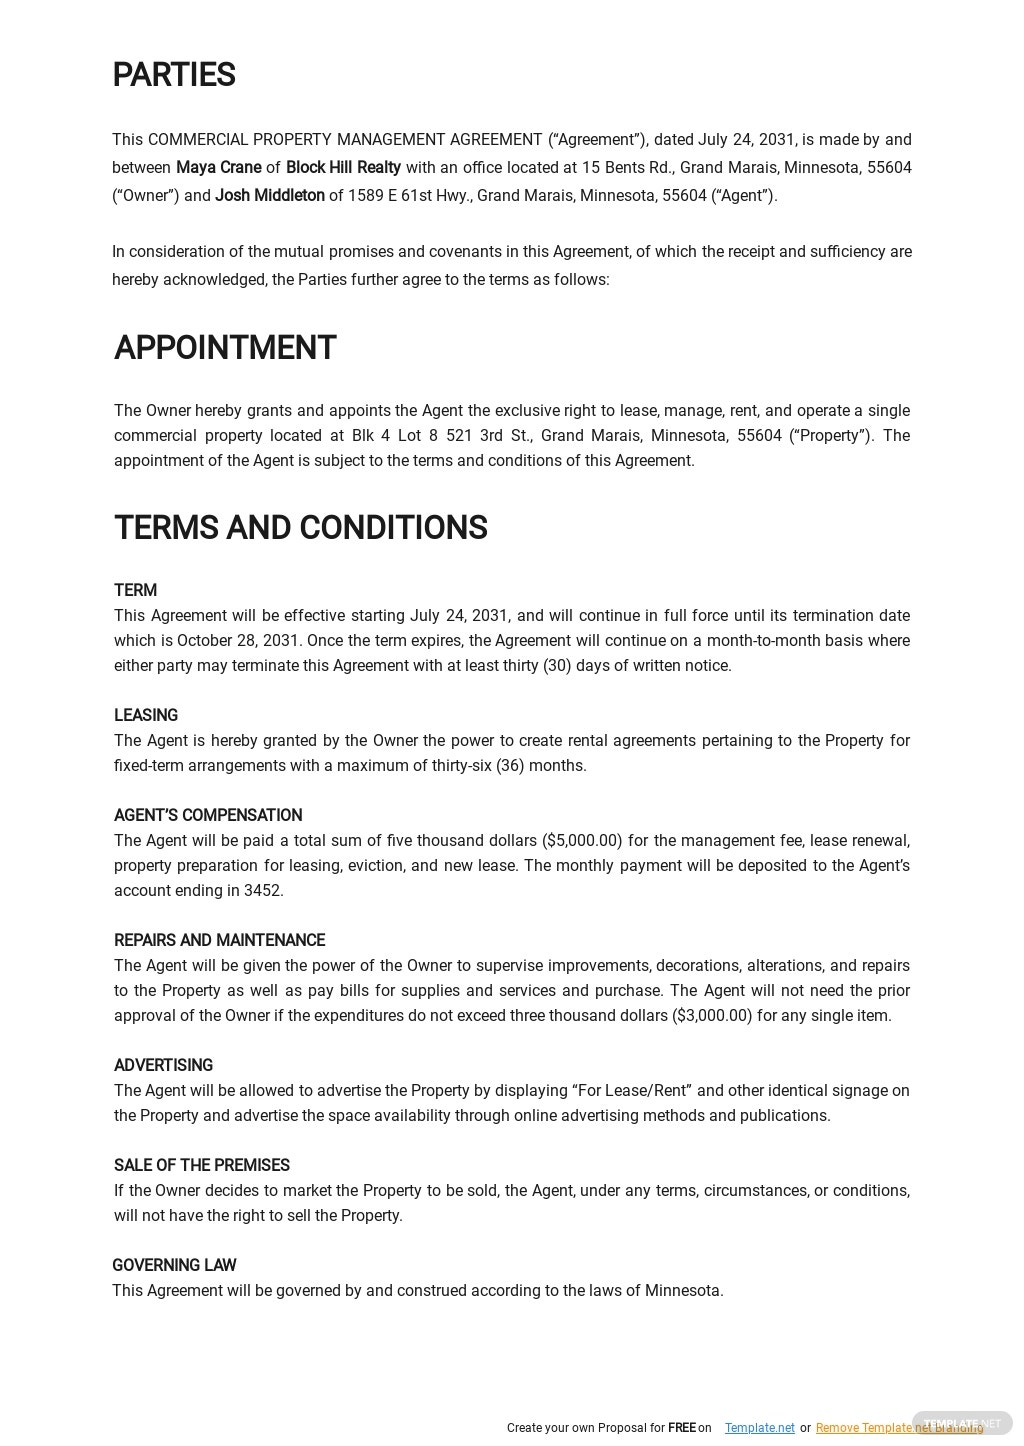 Commercial Property Management Agreement Template 1.jpe